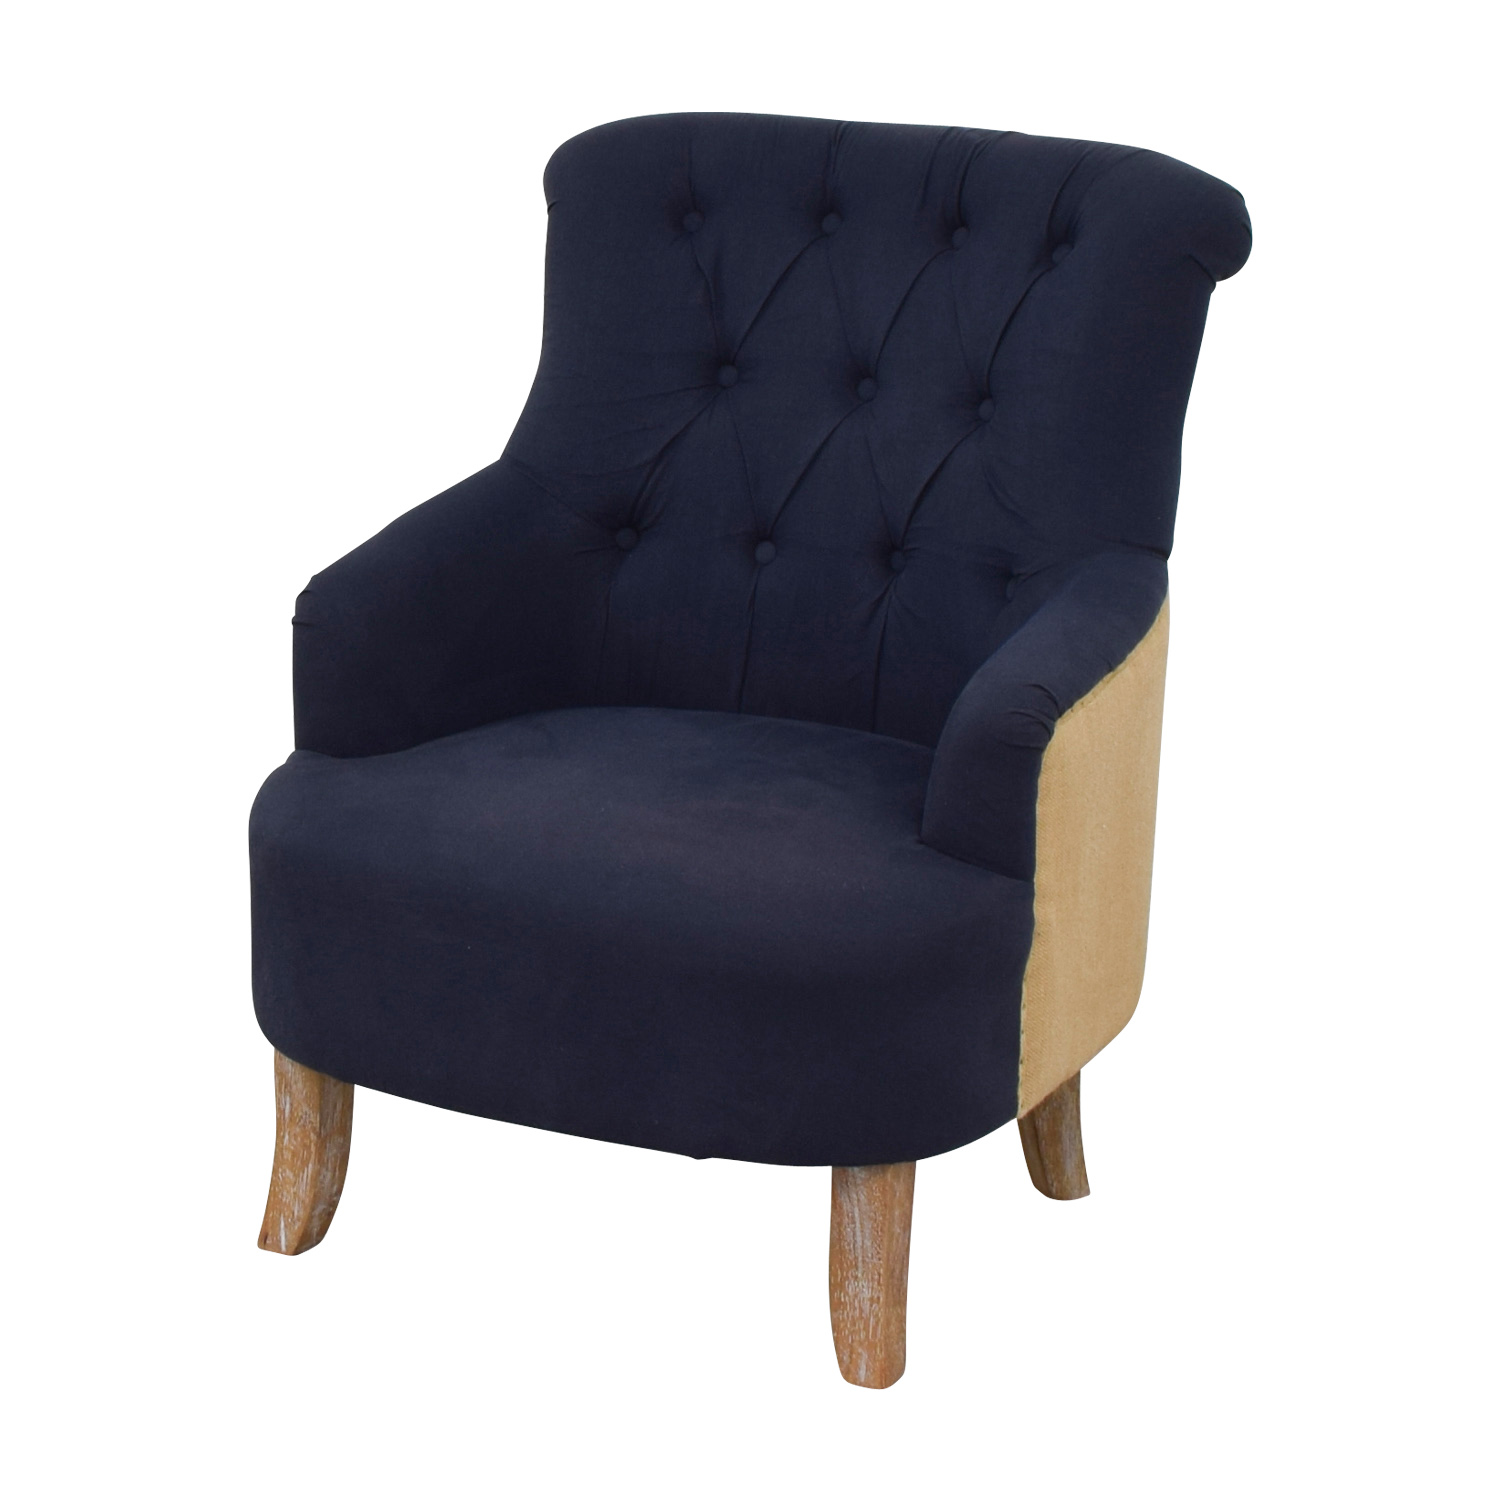 buy Pier 1 Imports Blue and Tan Tufted Armchair Pier 1 Imports Accent Chairs